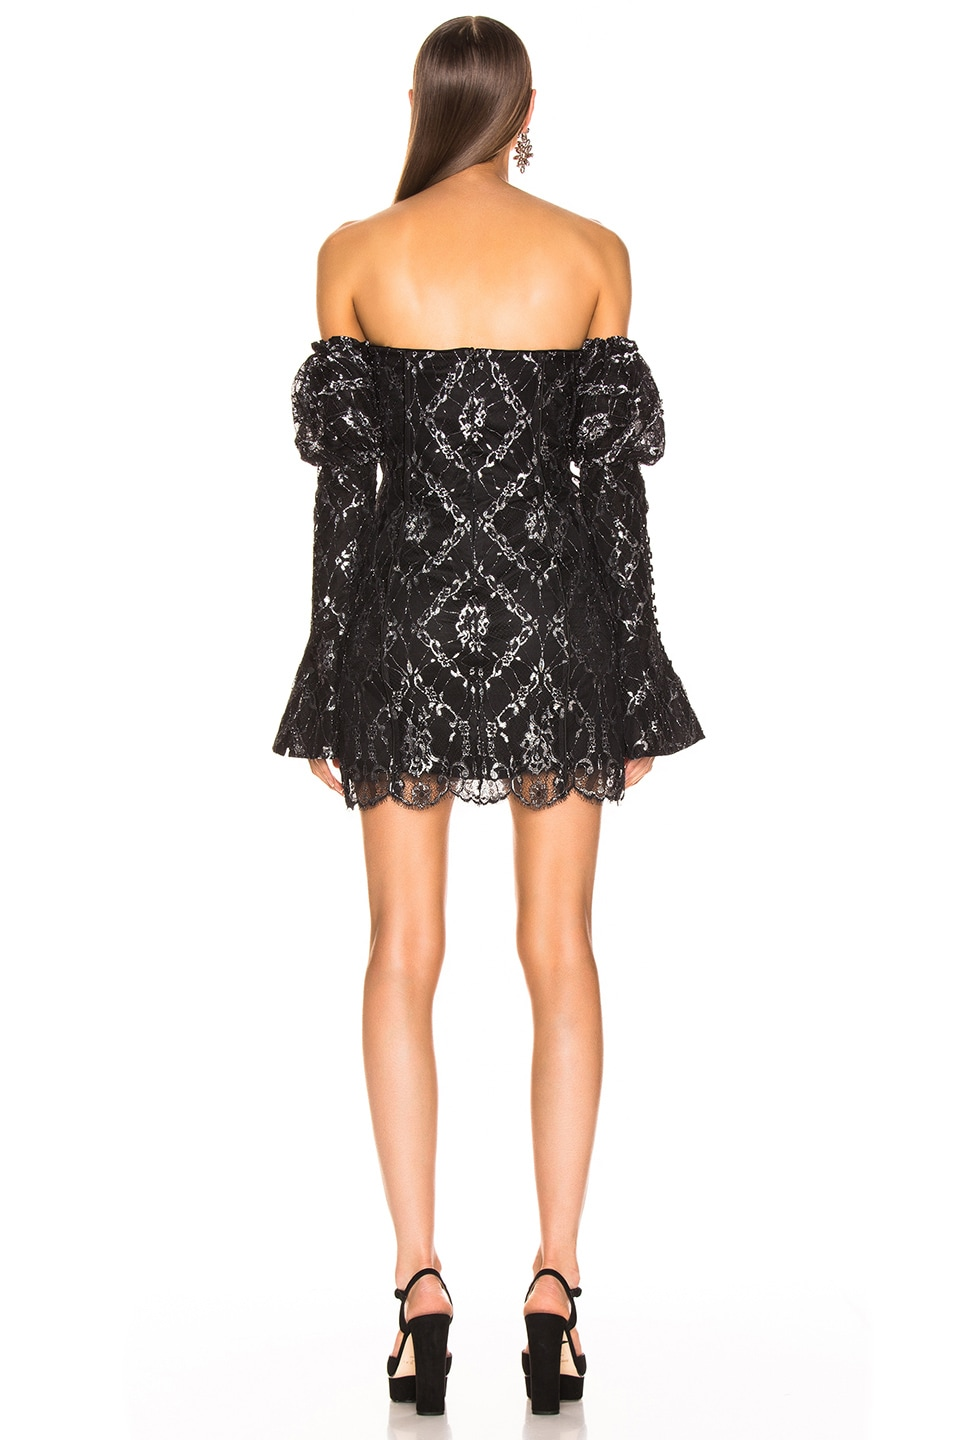 Image 4 of JONATHAN SIMKHAI for FWRD Off the Shoulder Metallic Lace Dress in Black